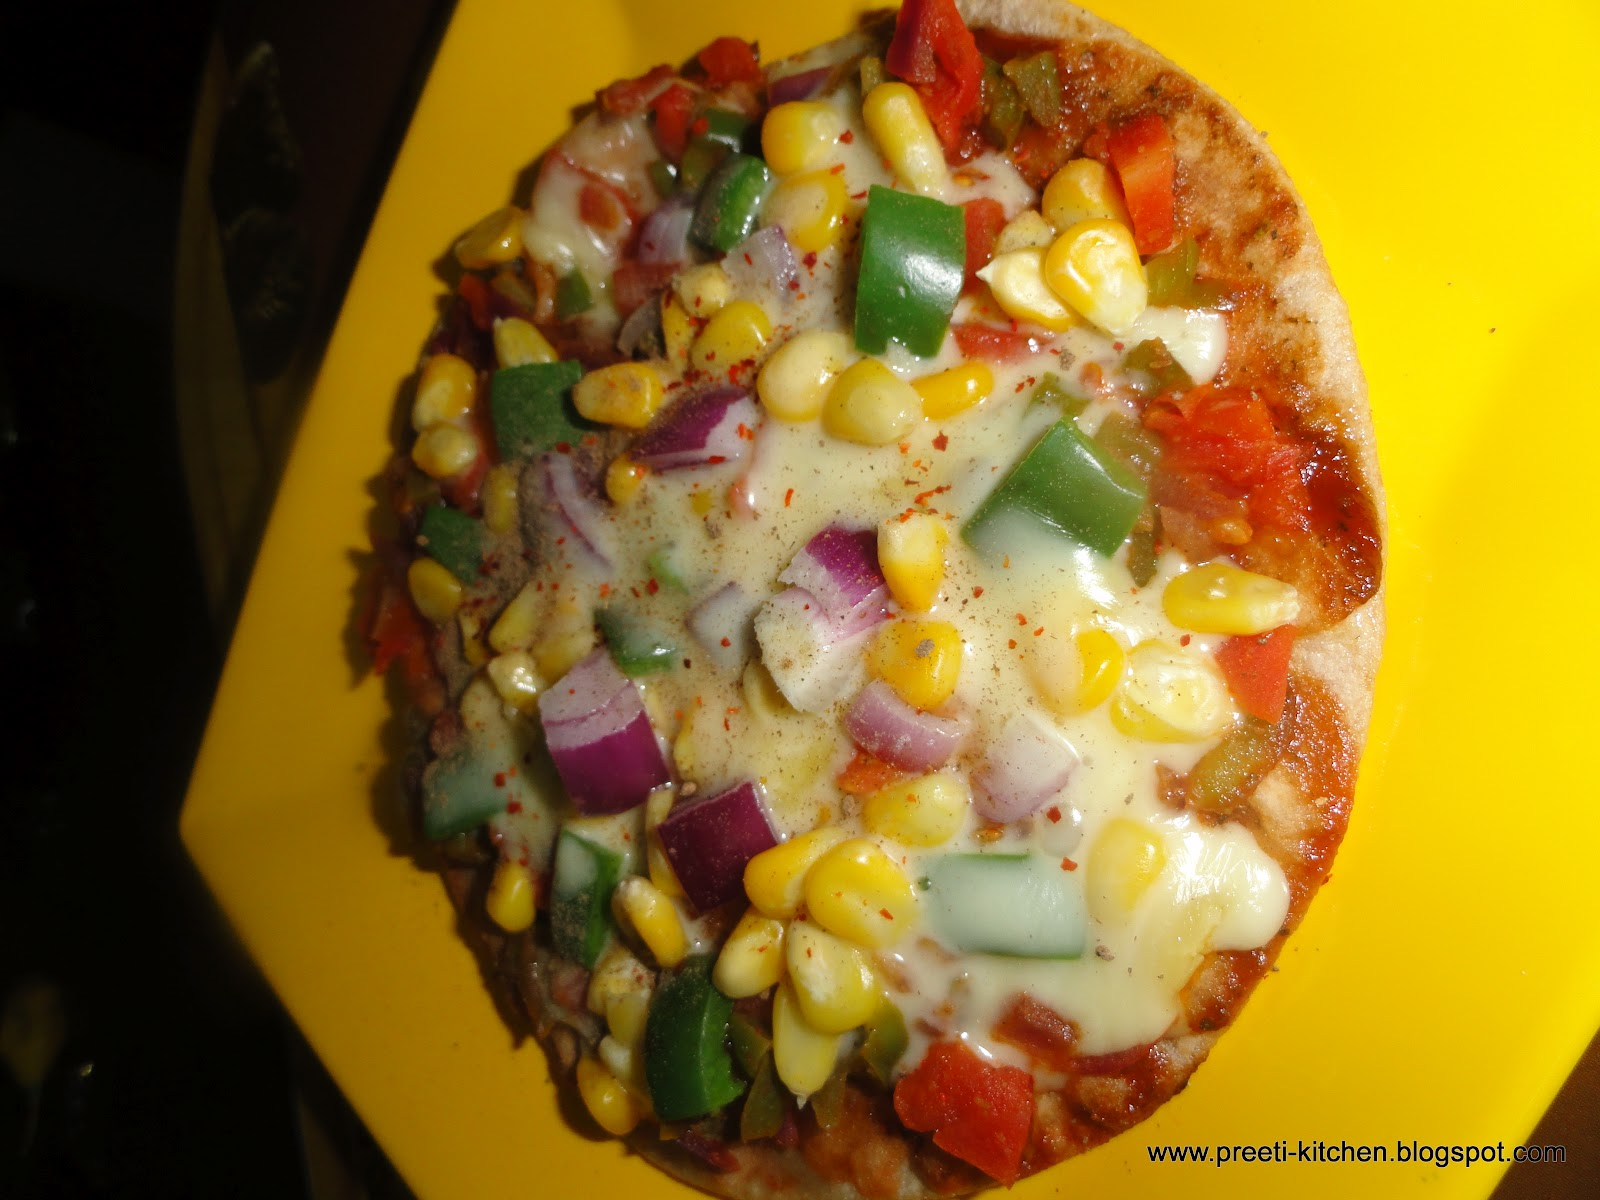 How to make pizza at home without oven with readymade base